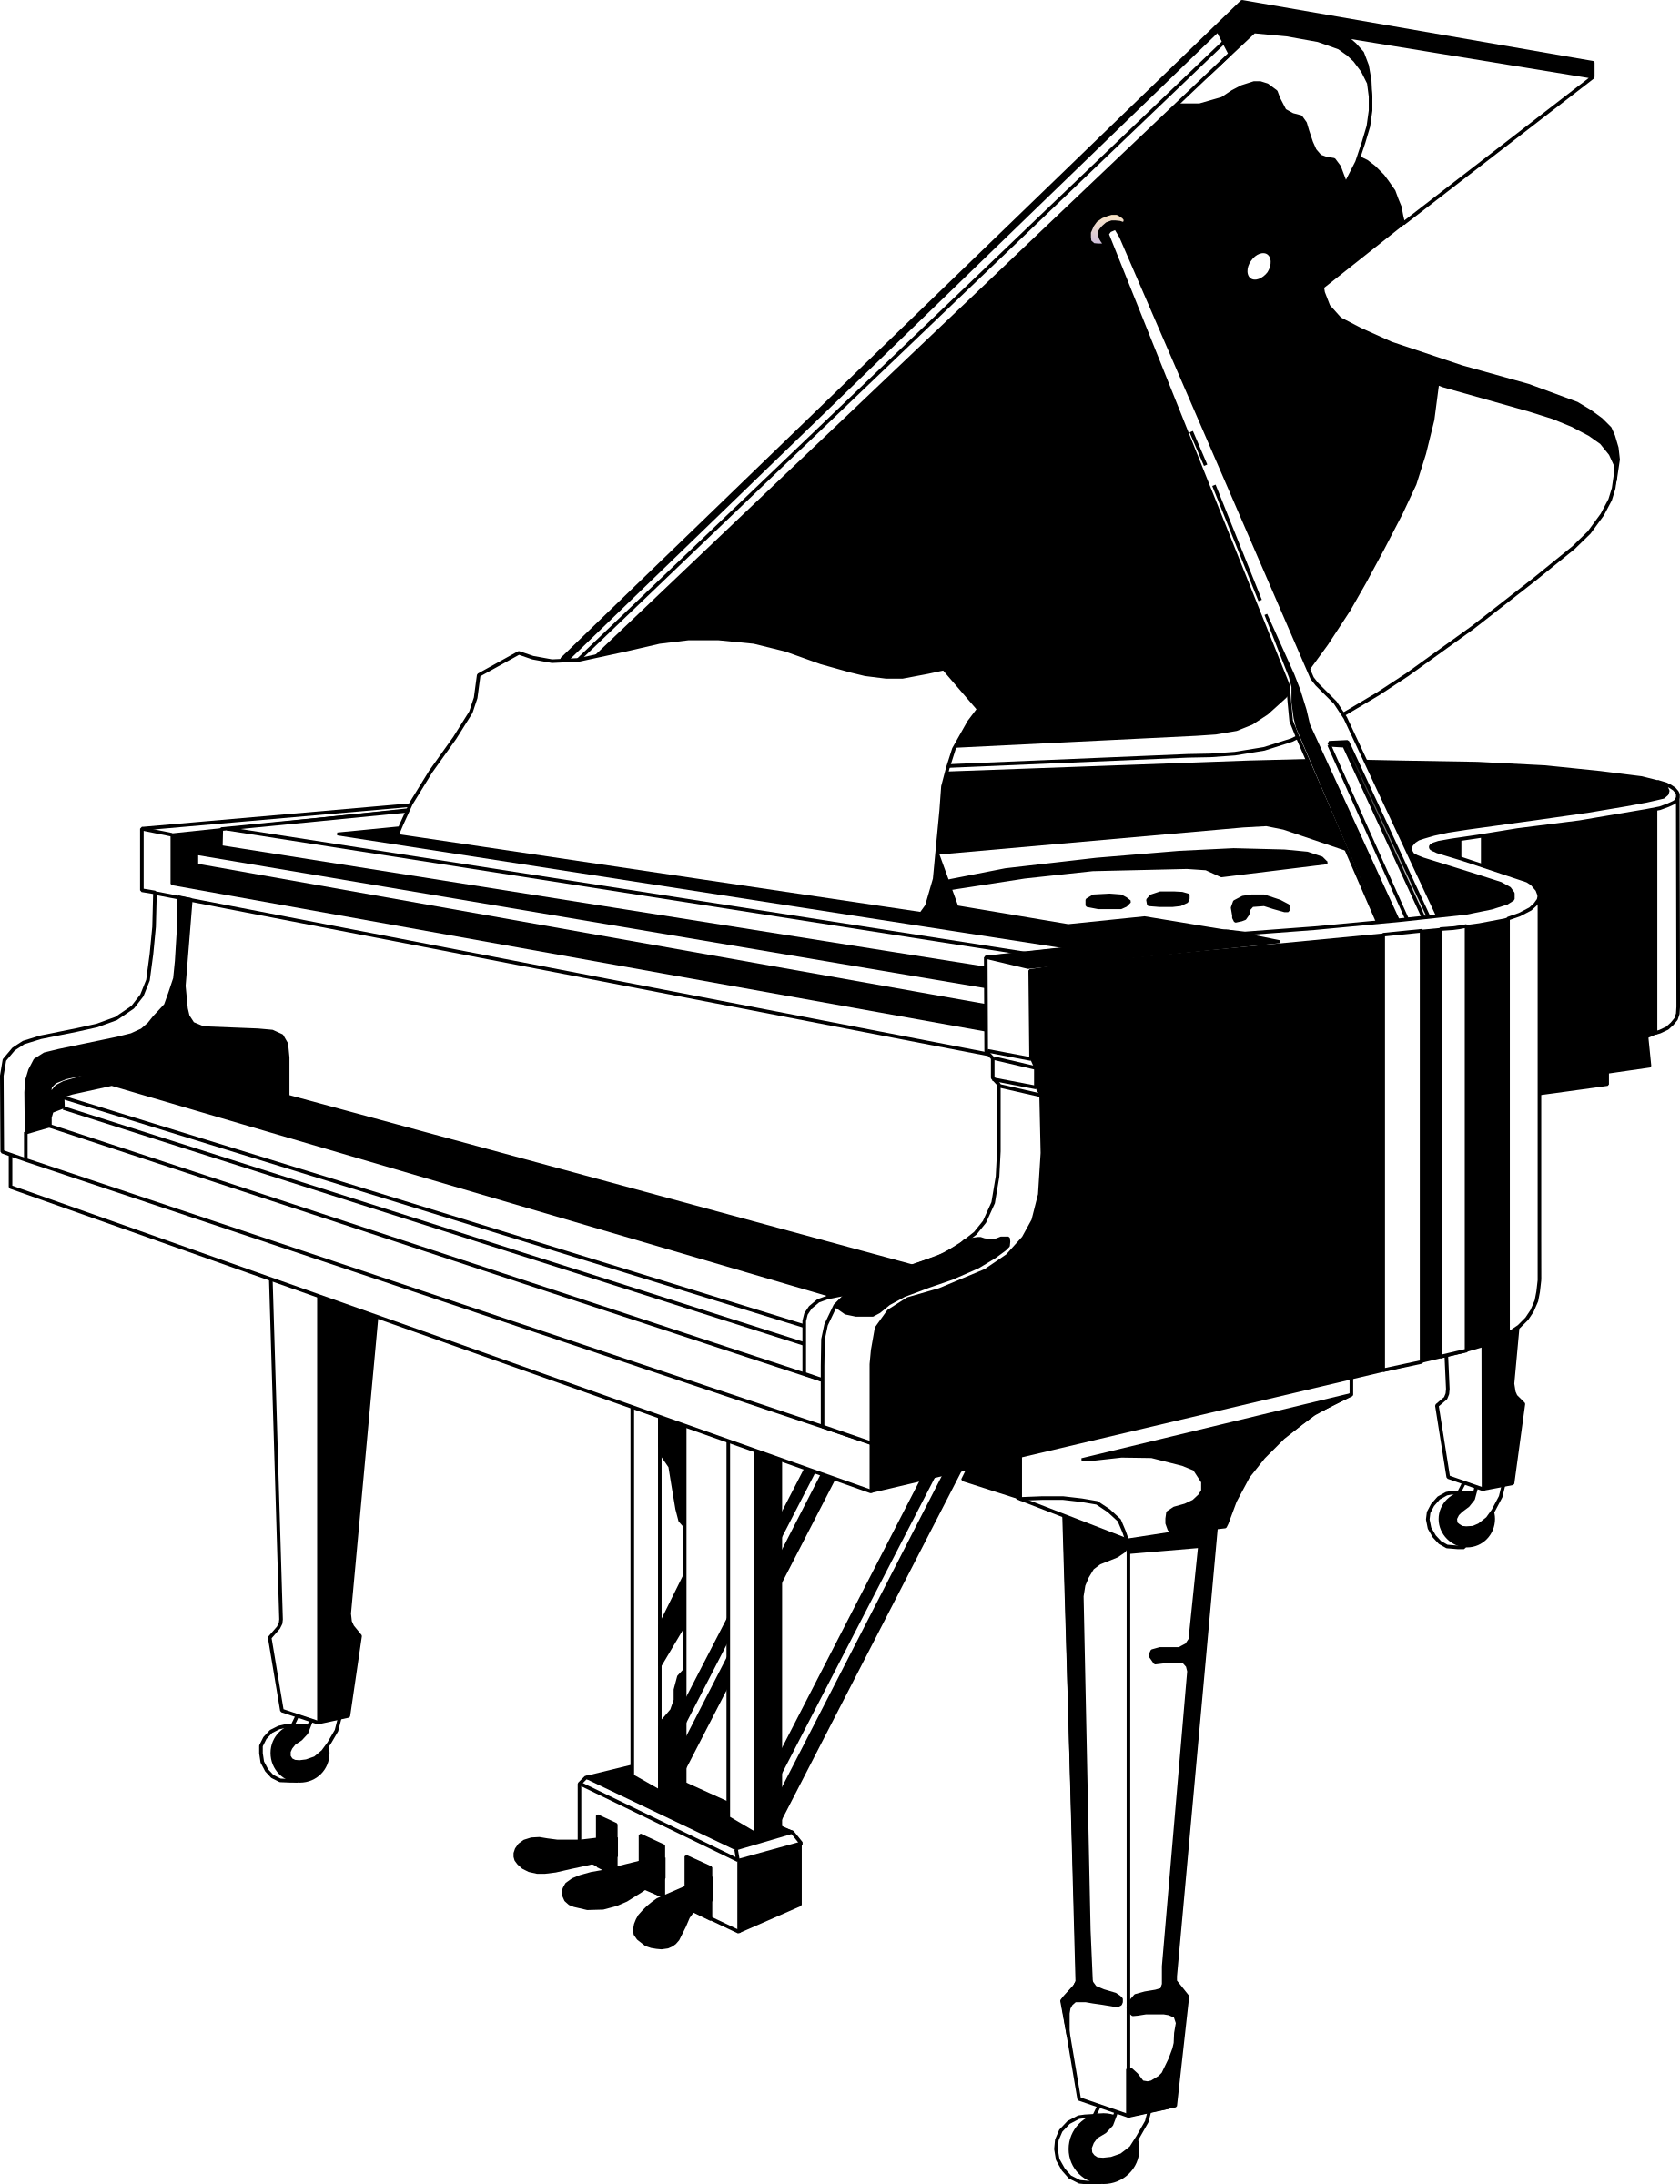 graphic free library Big image png. Piano keyboard clipart black and white